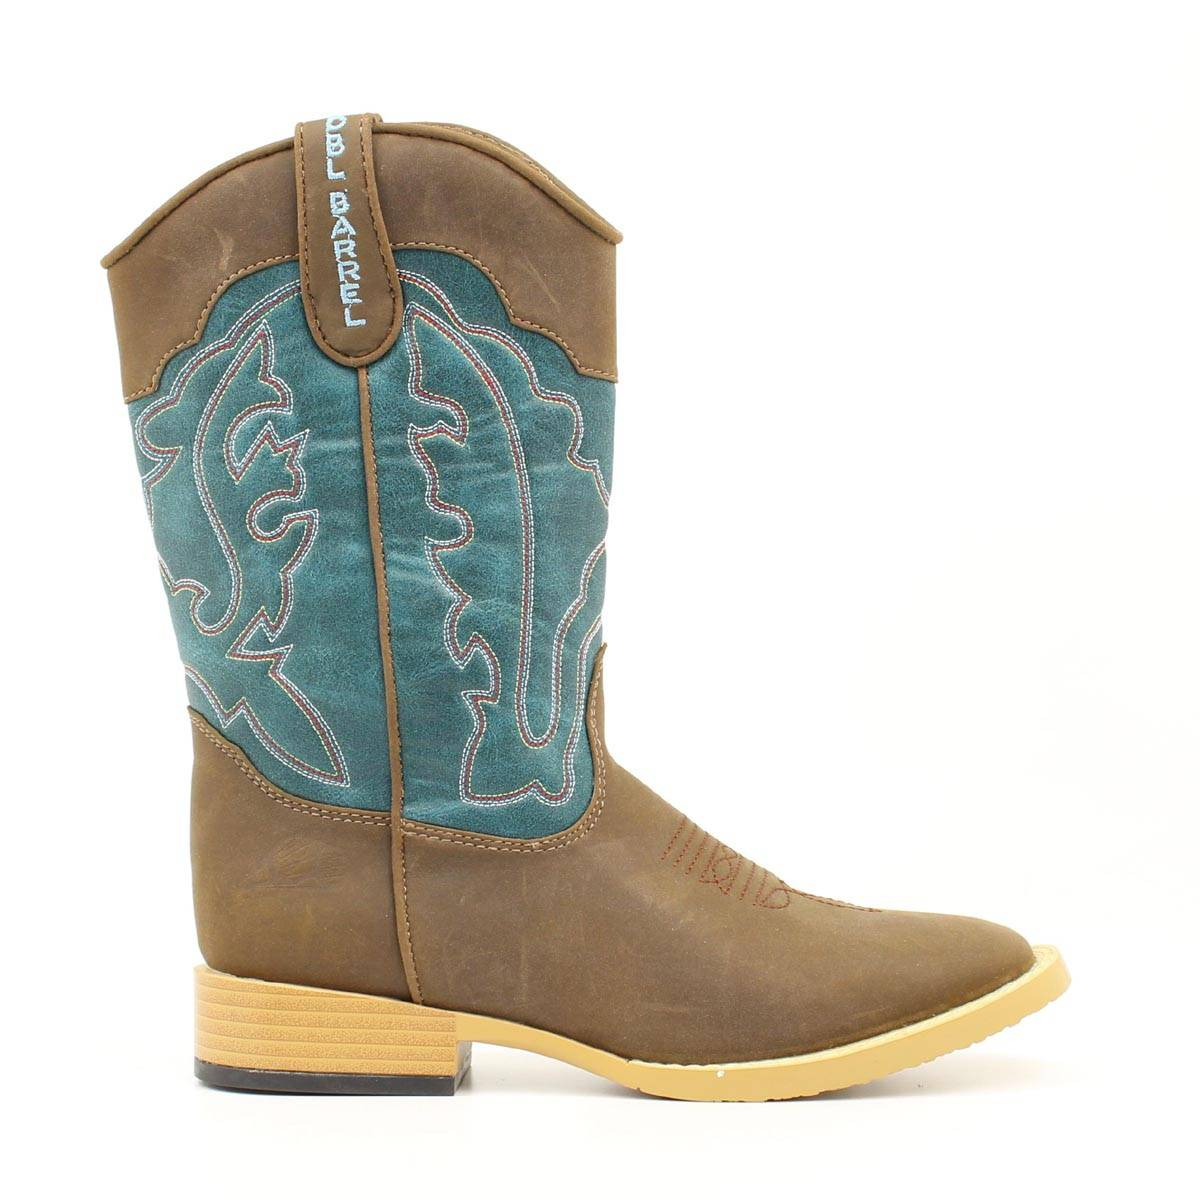 DBL Barrel Youth Open Range Boot